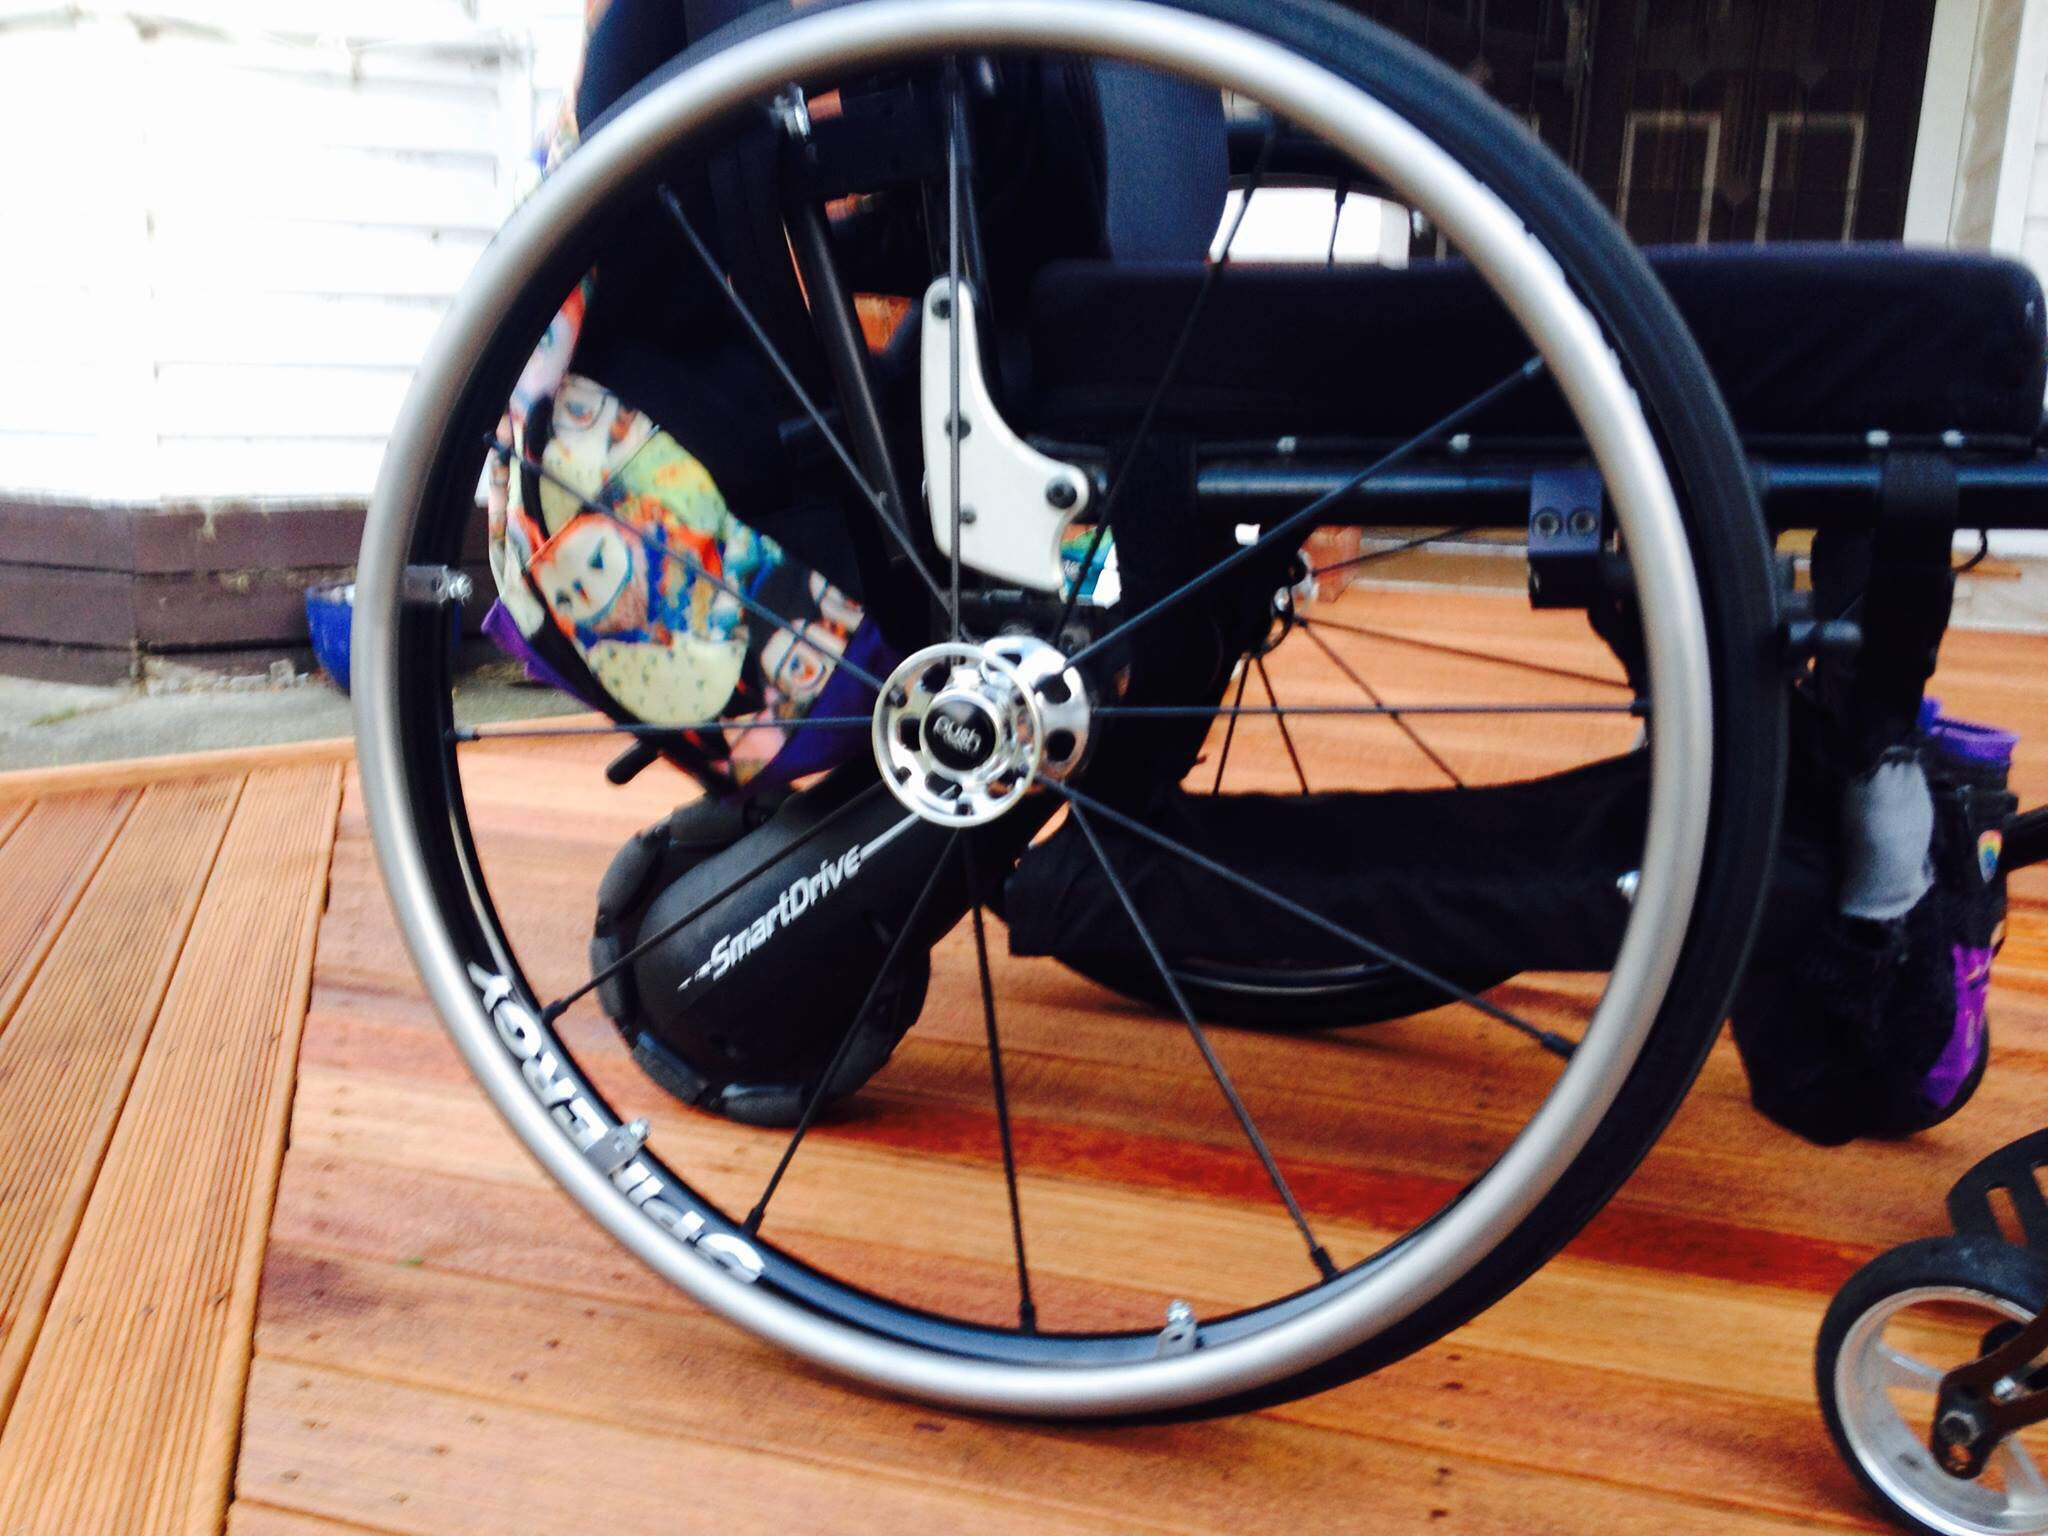 Image of a wheel of a wheelchair on a wooden floor, a owl printed bag can be seen hanging on the back